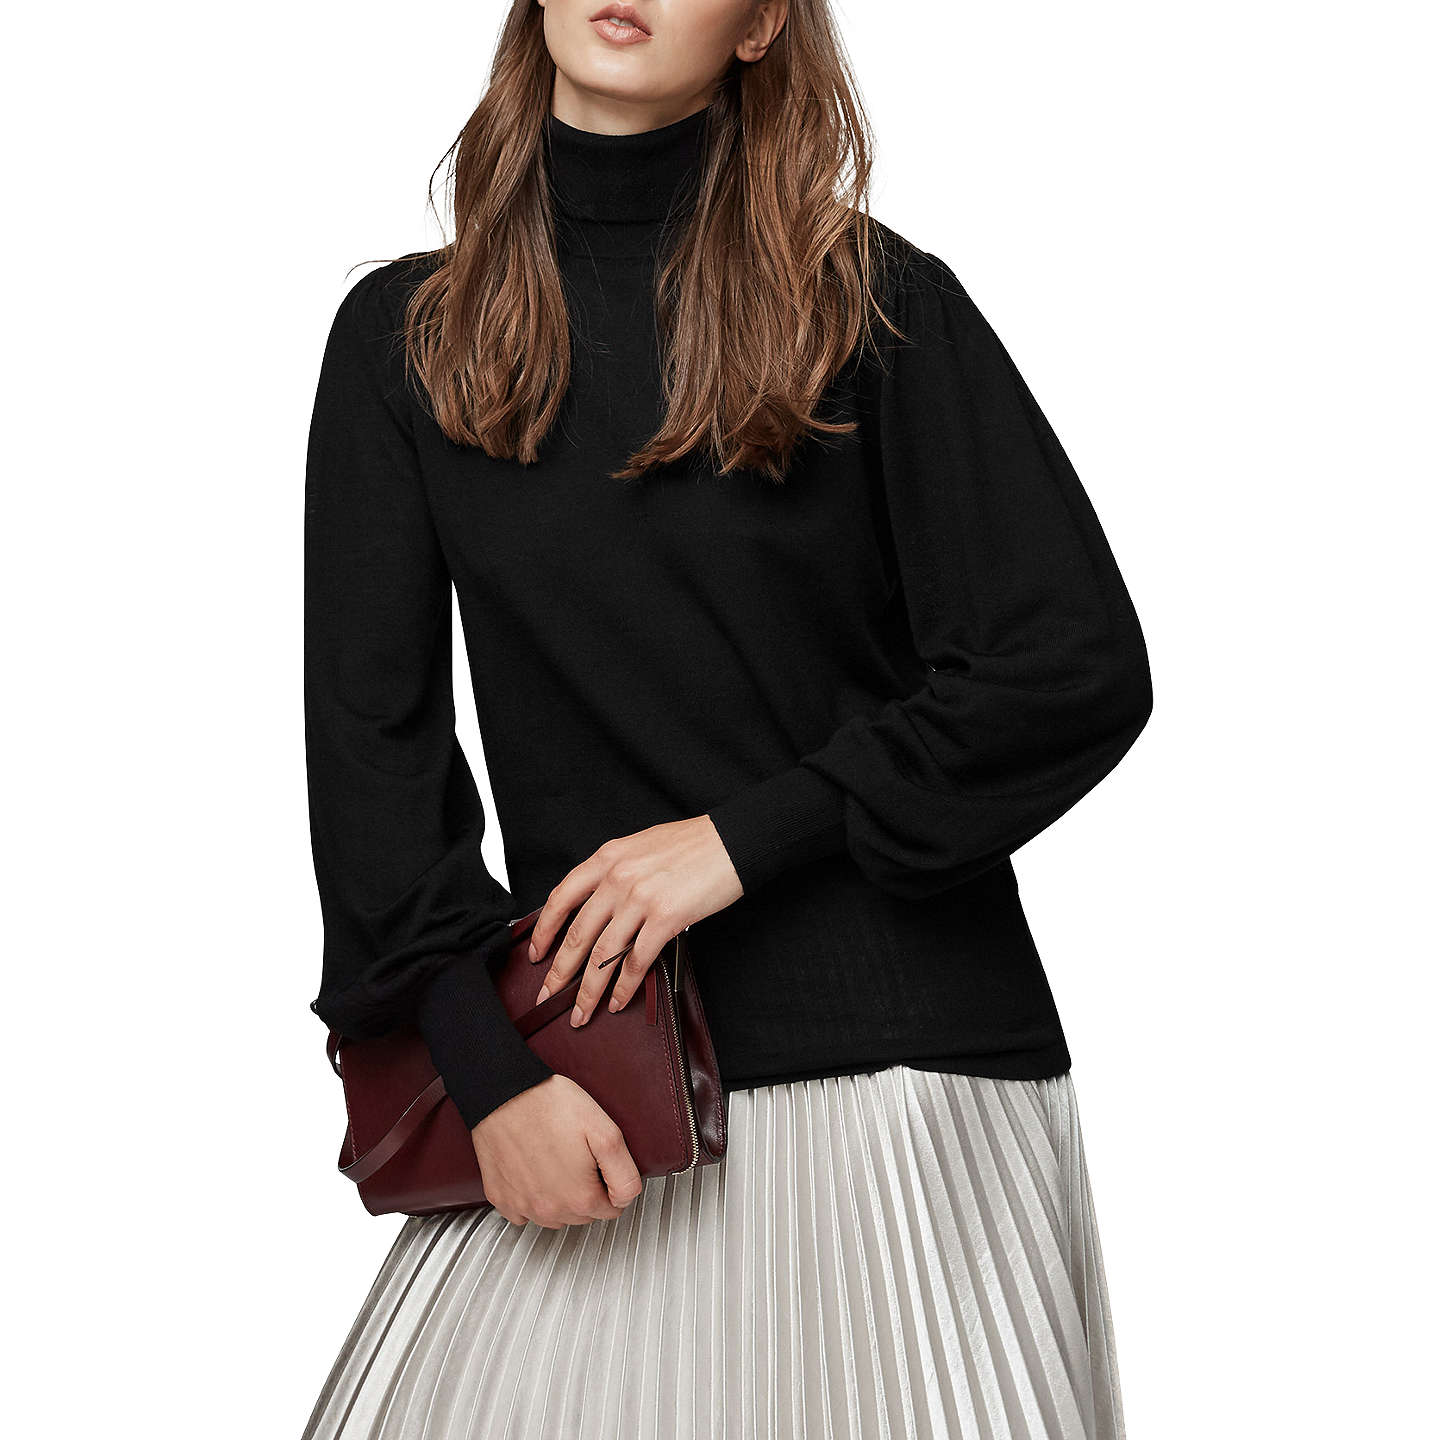 BuyReiss Caroline Merino Wool Roll Neck Jumper , Black, 6 Online at johnlewis.com